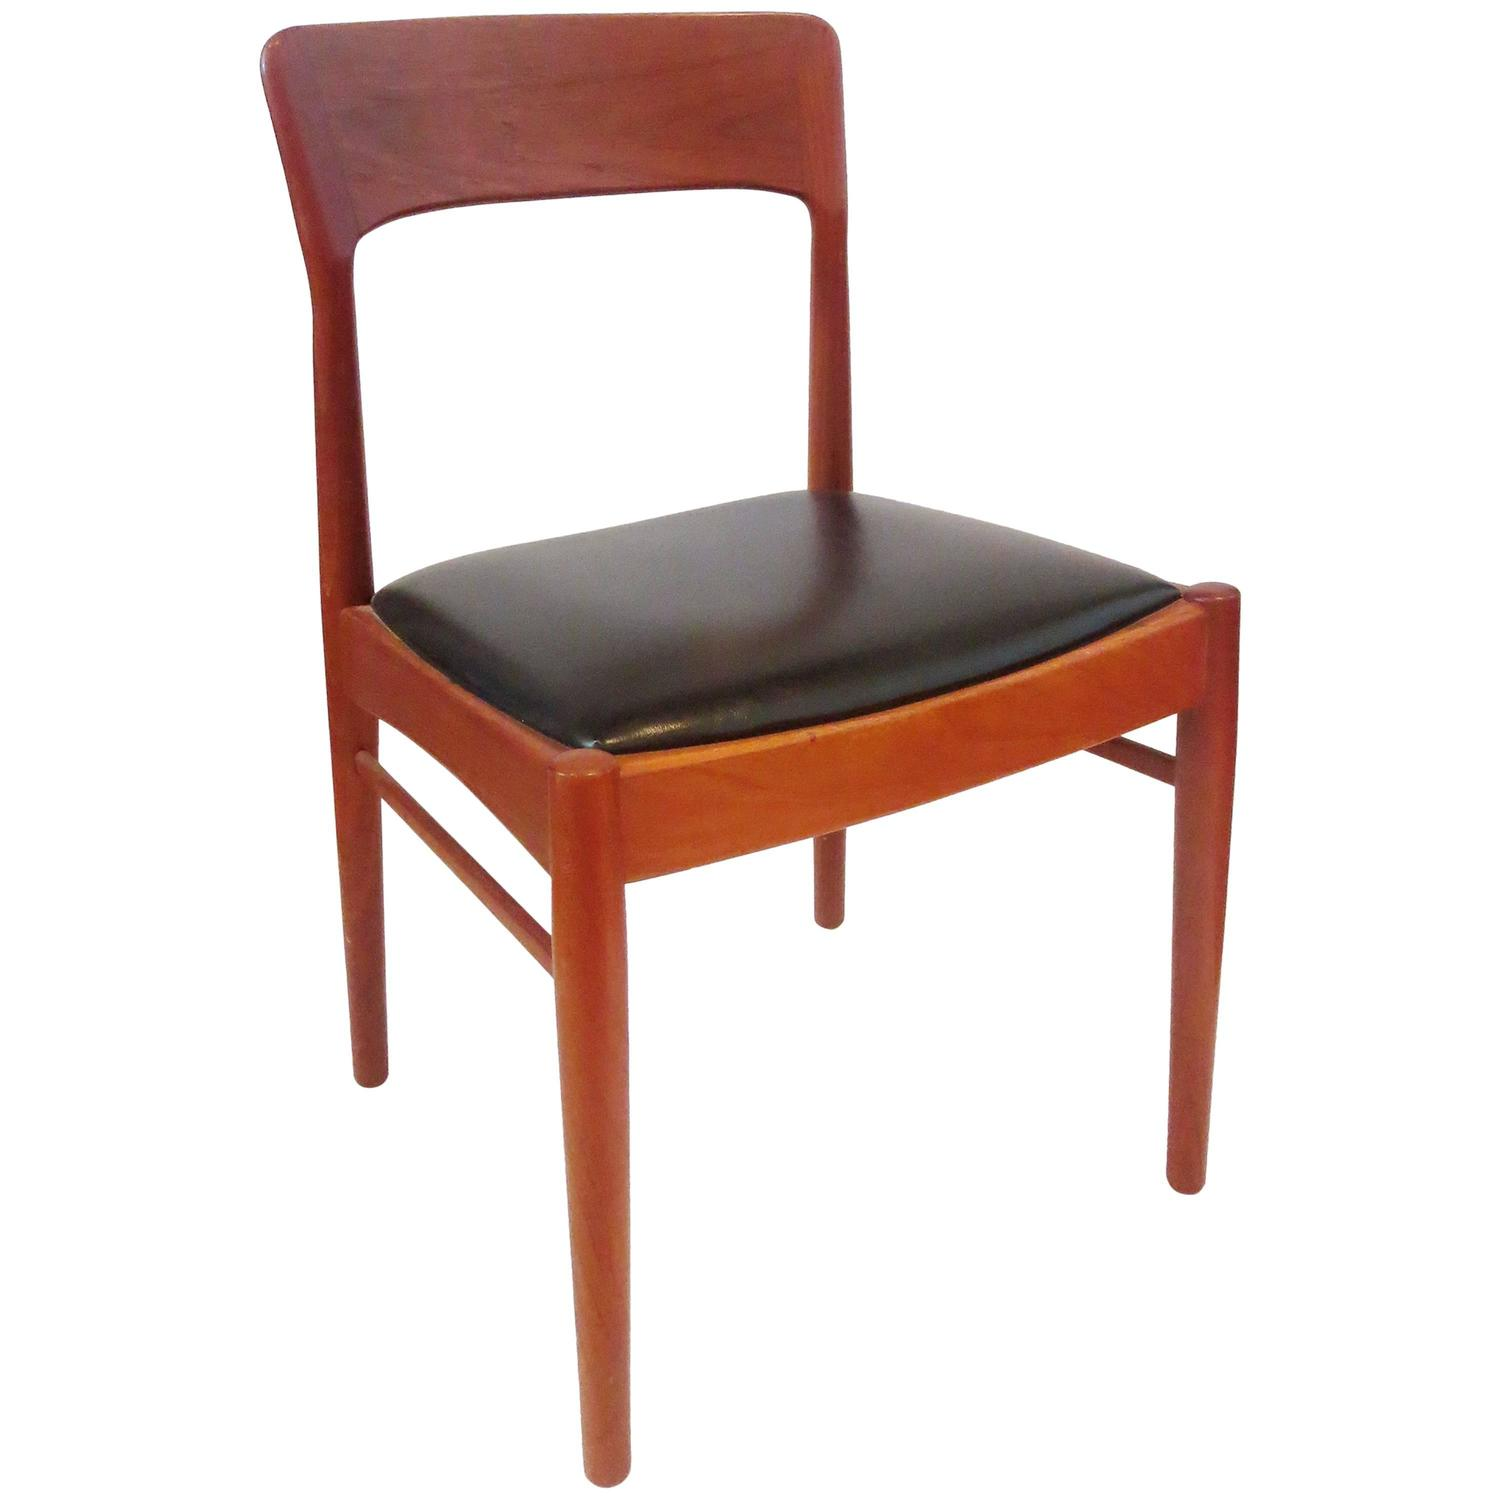 1950s danish modern teak side chair at 1stdibs